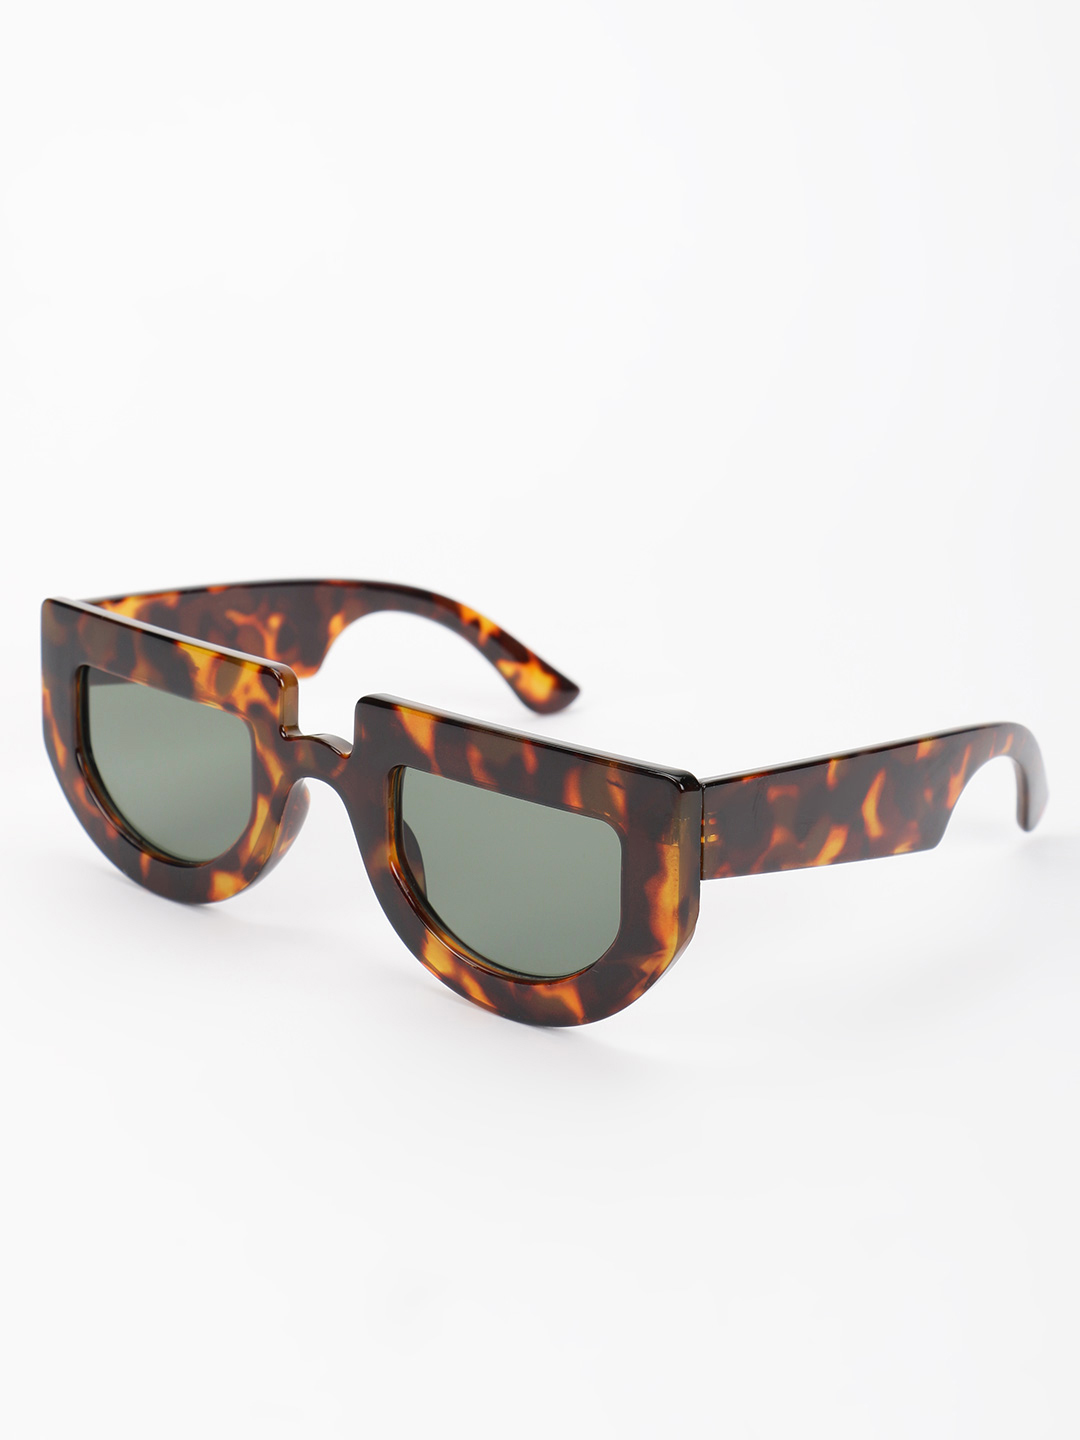 Pataaka Brown Tortoise Shell Retro Sunglasses 1